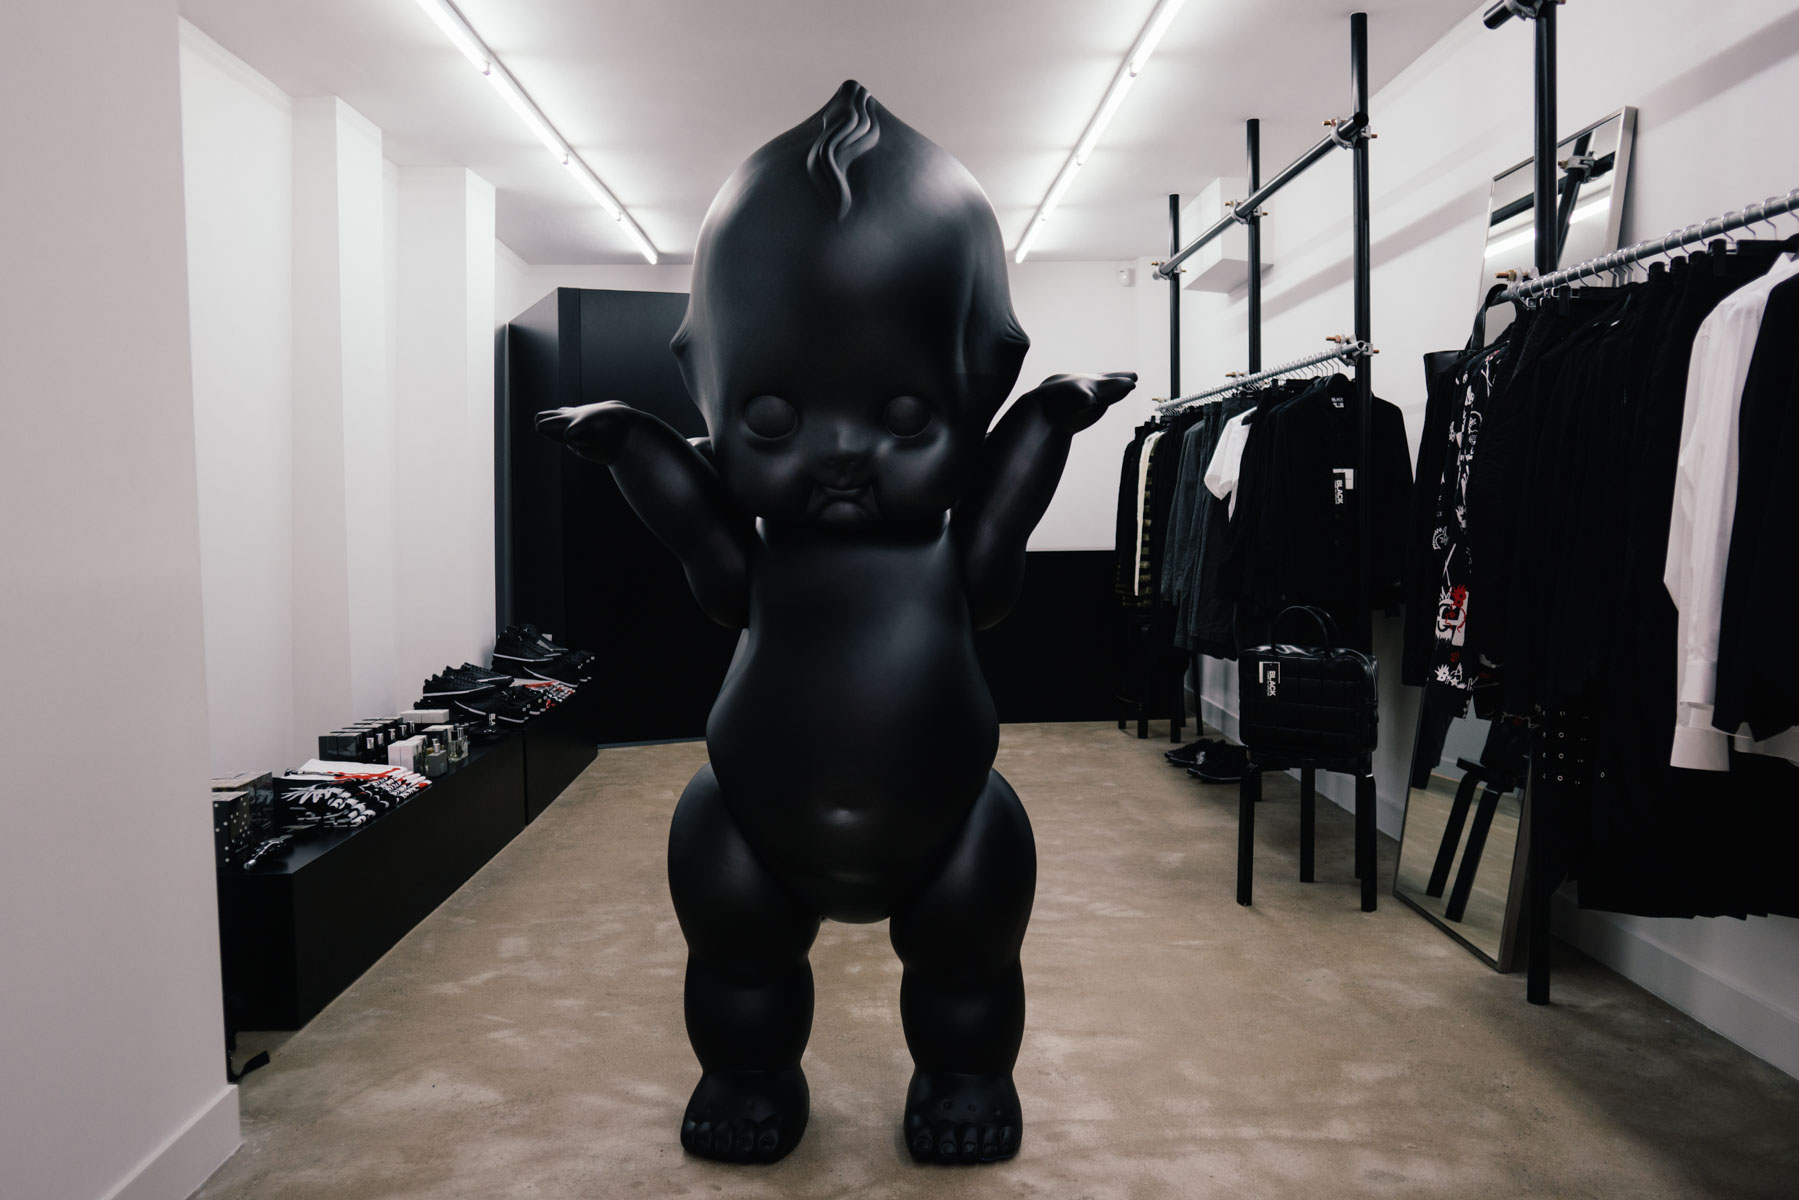 COMME des GARÇONS Launches New BLACK Boutique in the Heart of Amsterdam